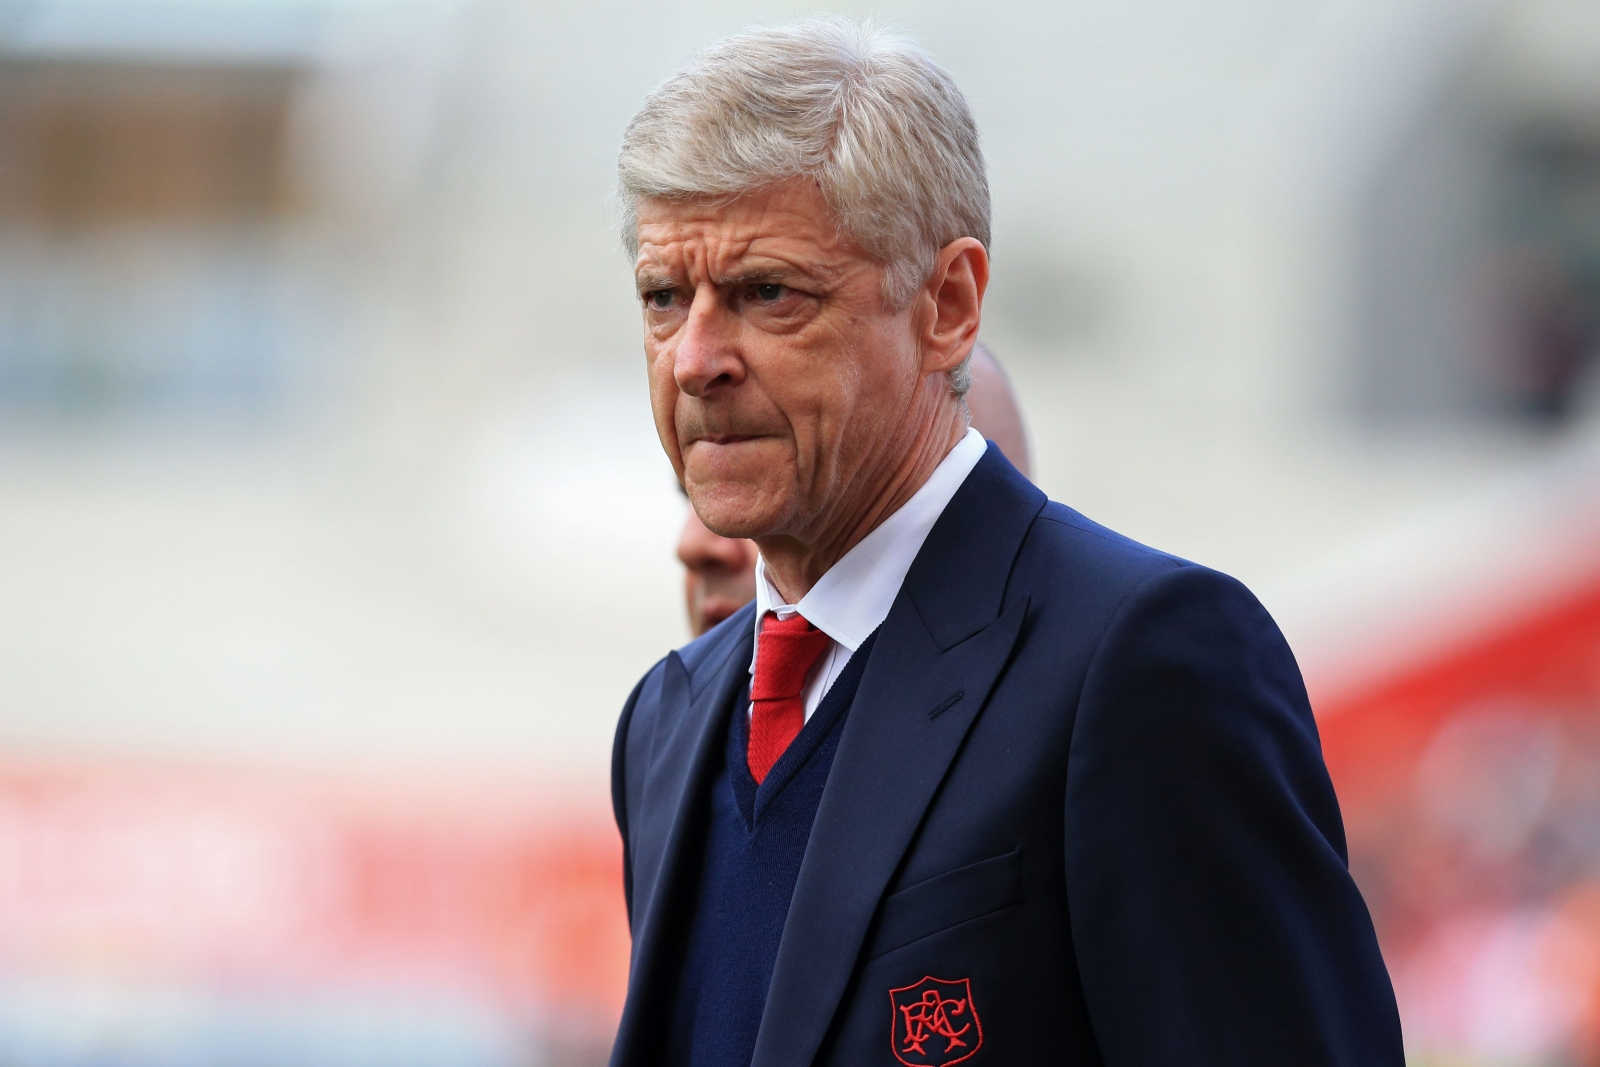 Arsenal reignite interest in star striker as Alexis speculation persists